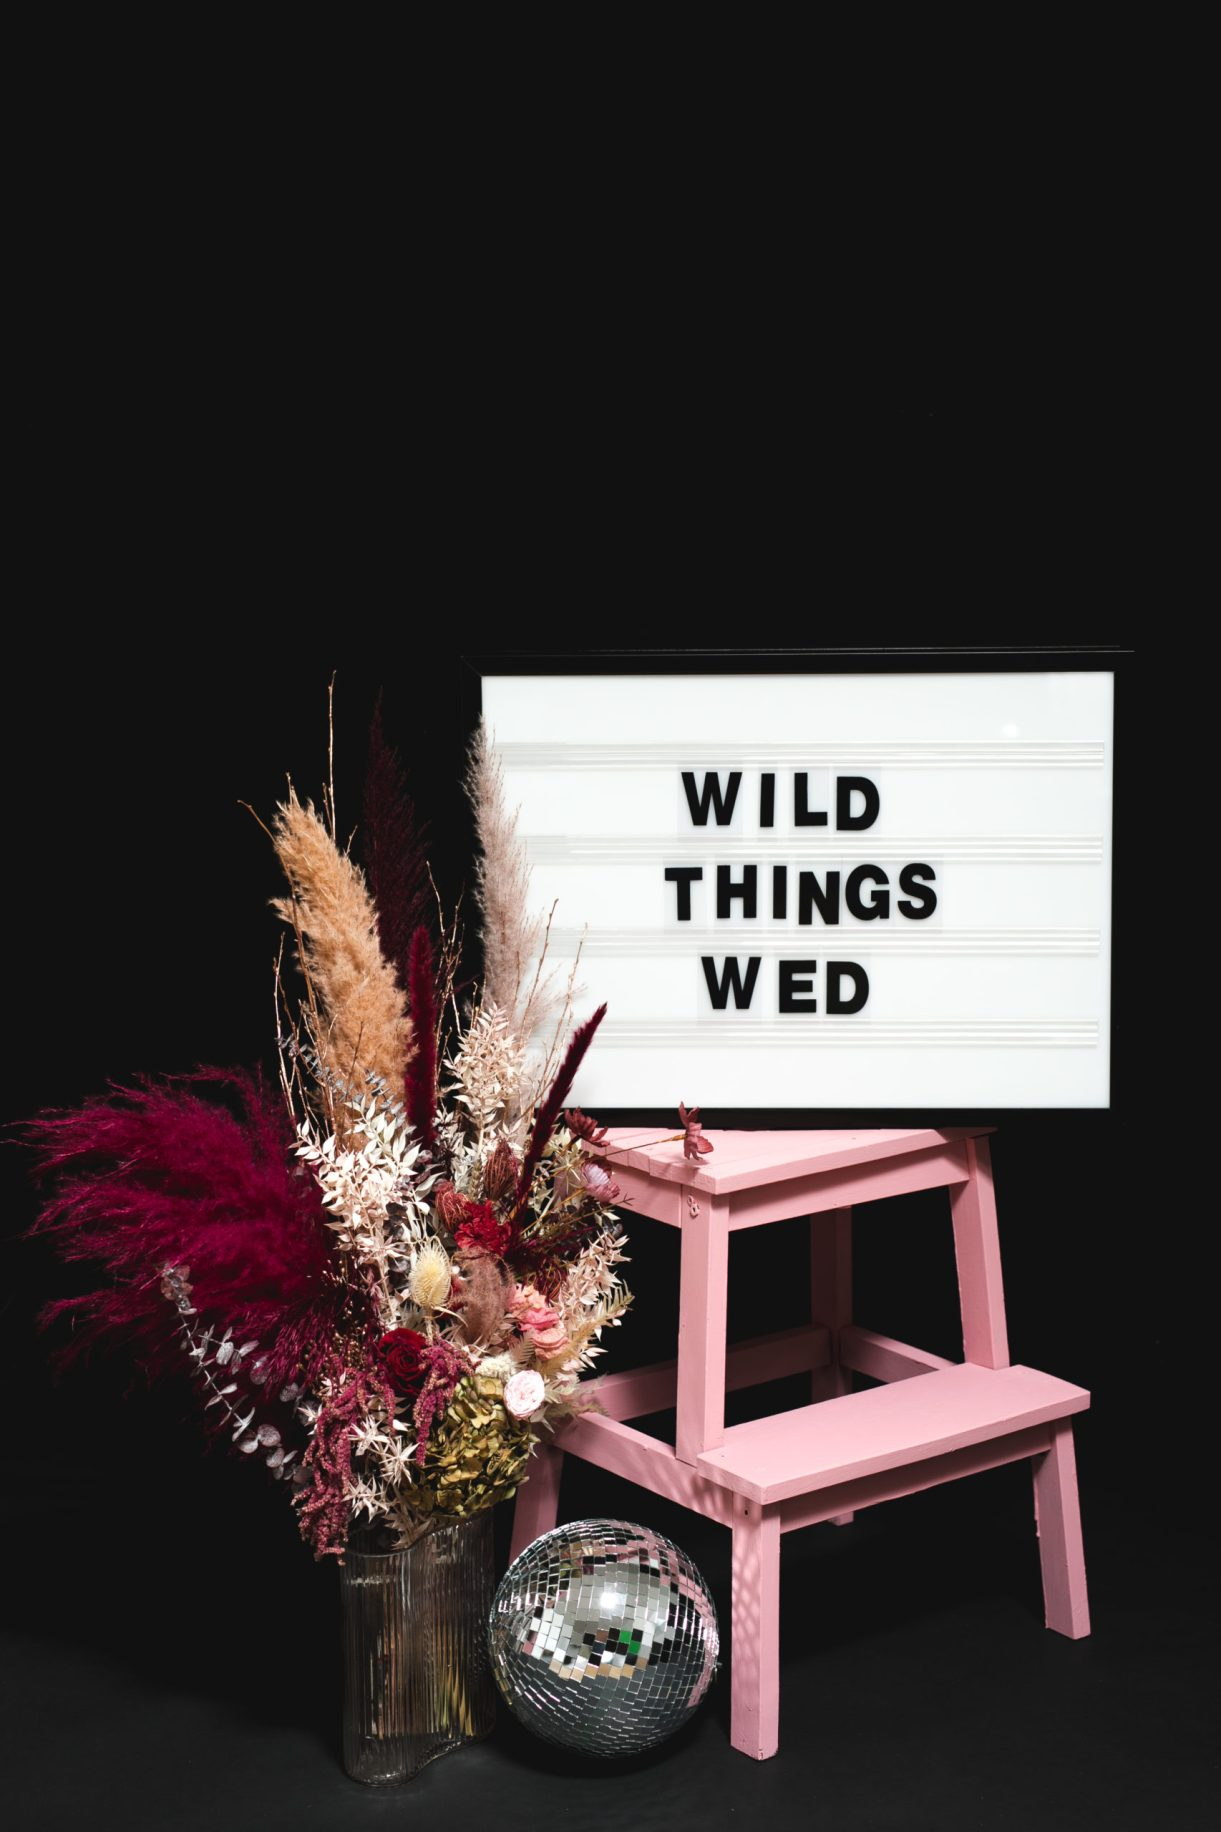 Wild Thing Wed venue styling rentals